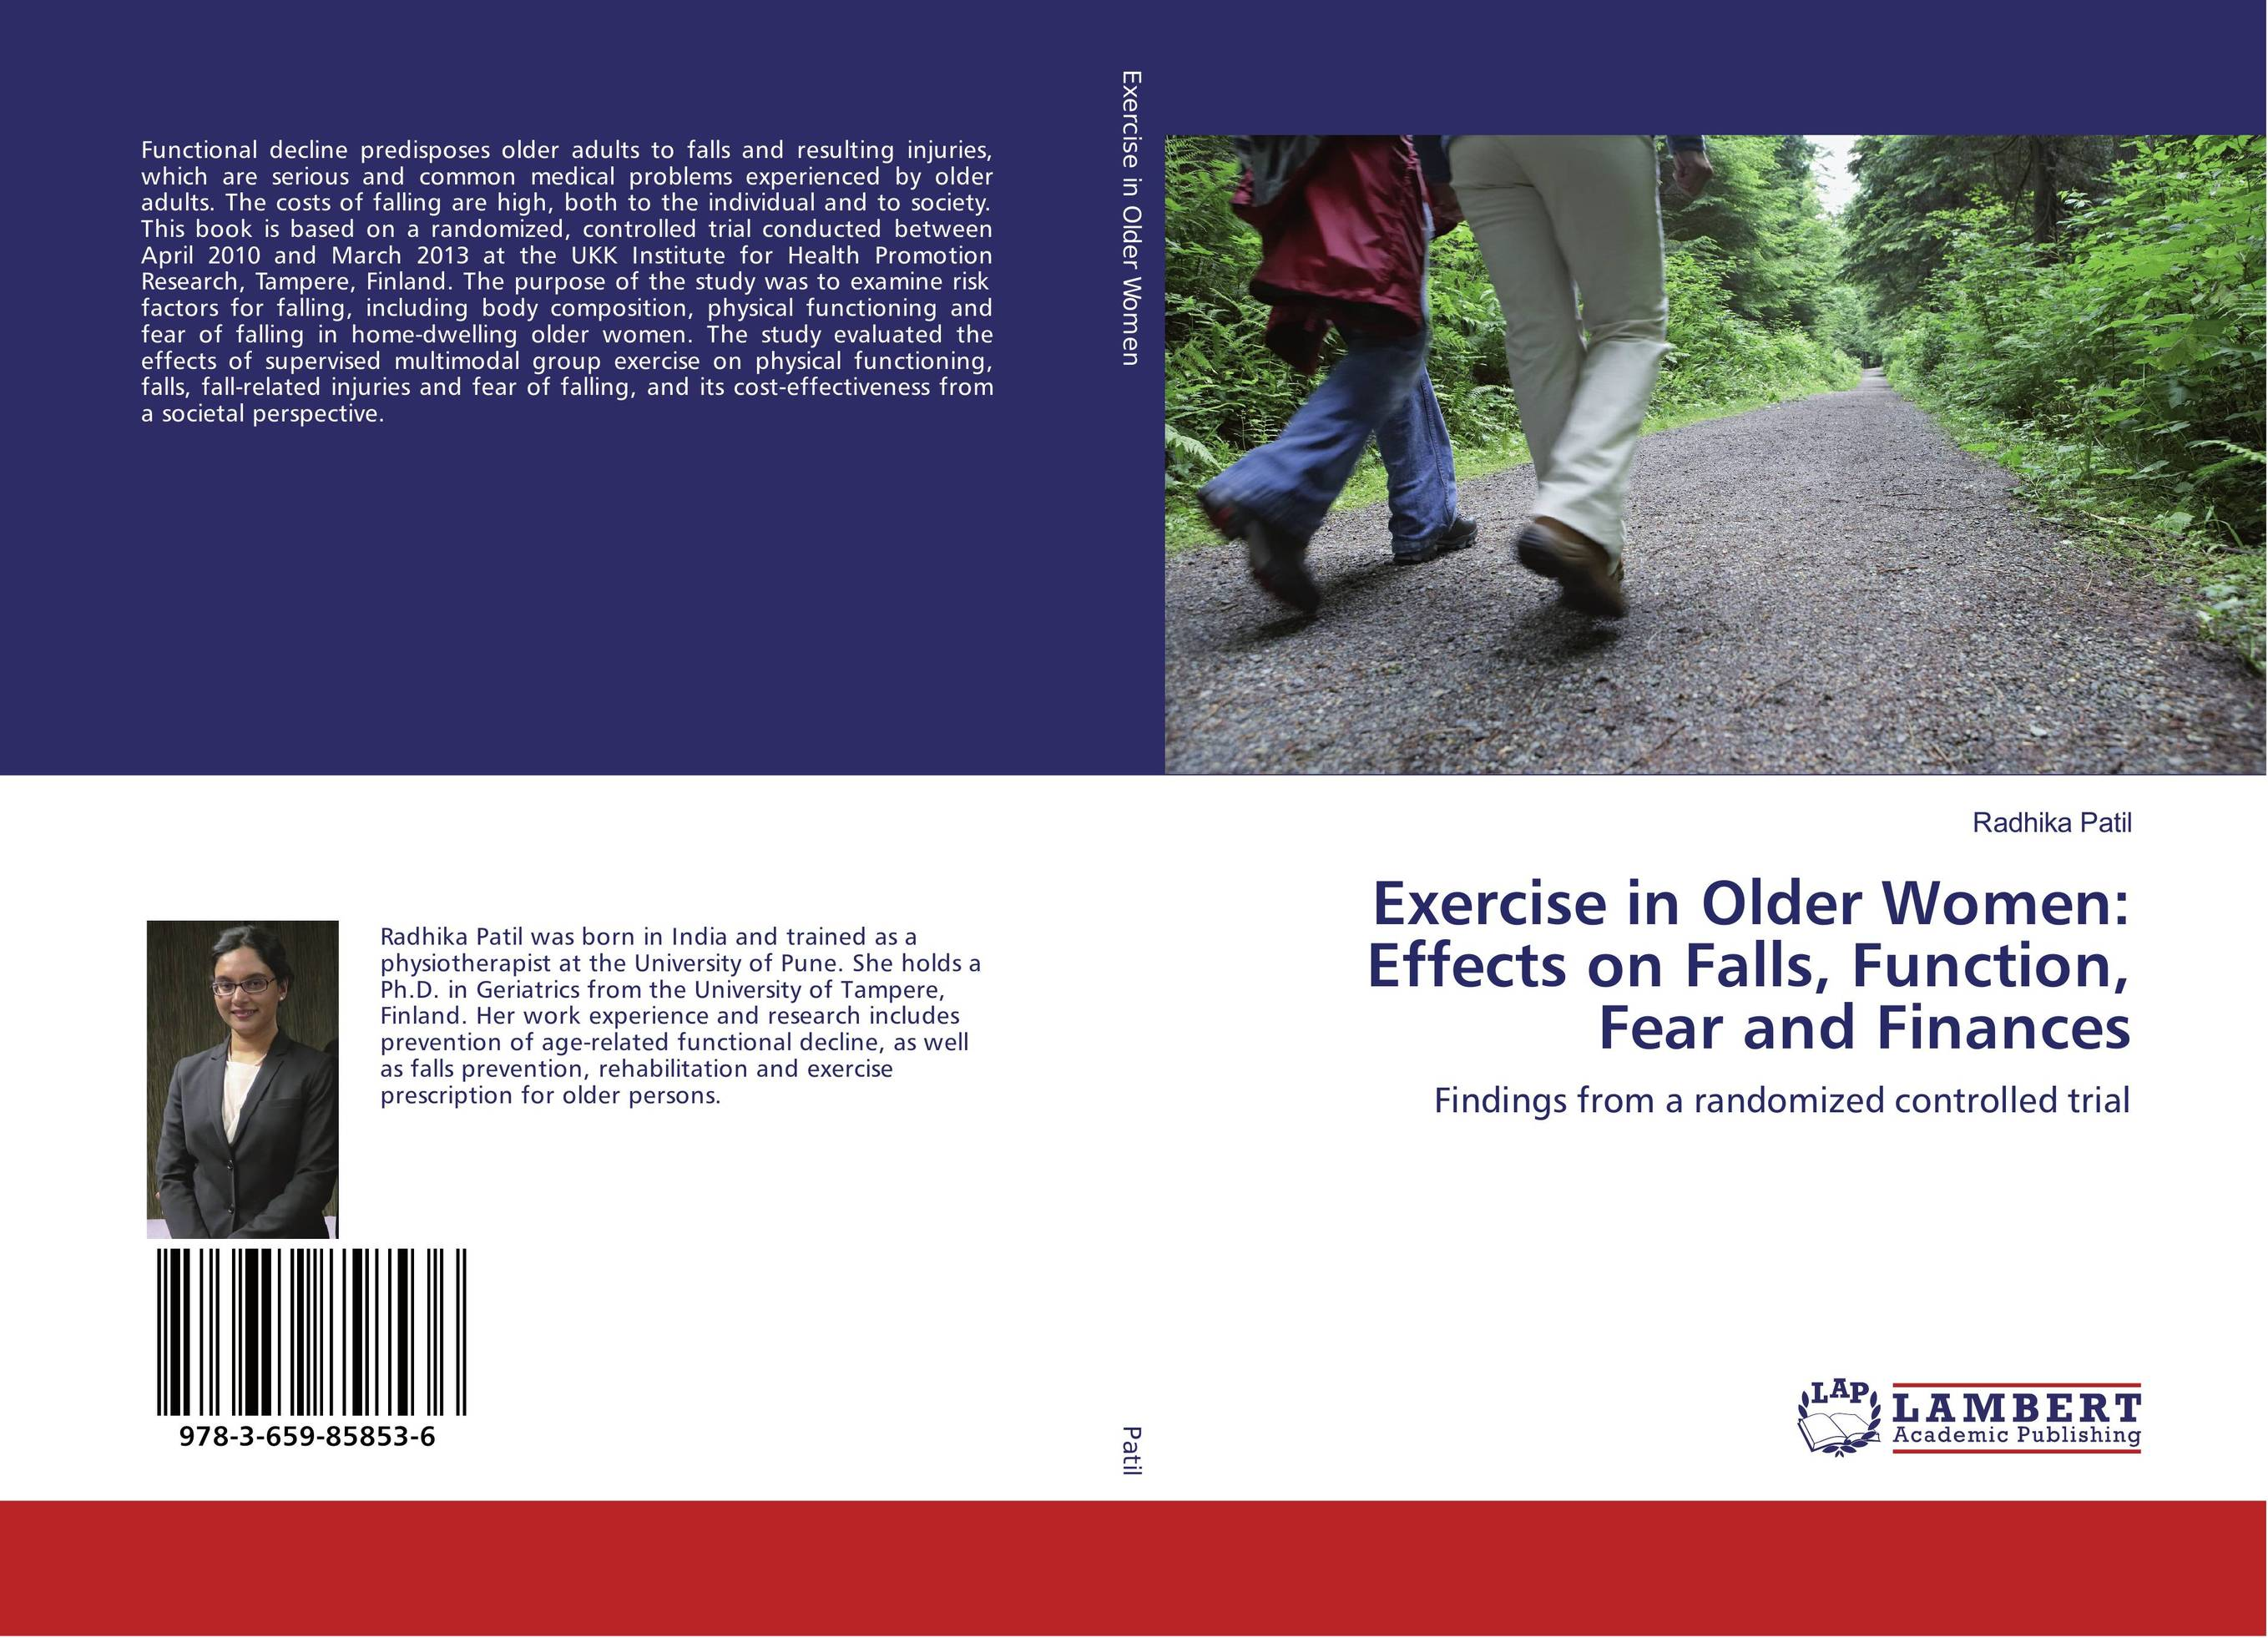 Exercise in Older Women: Effects on Falls, Function, Fear and Finances exercise effects on morphine